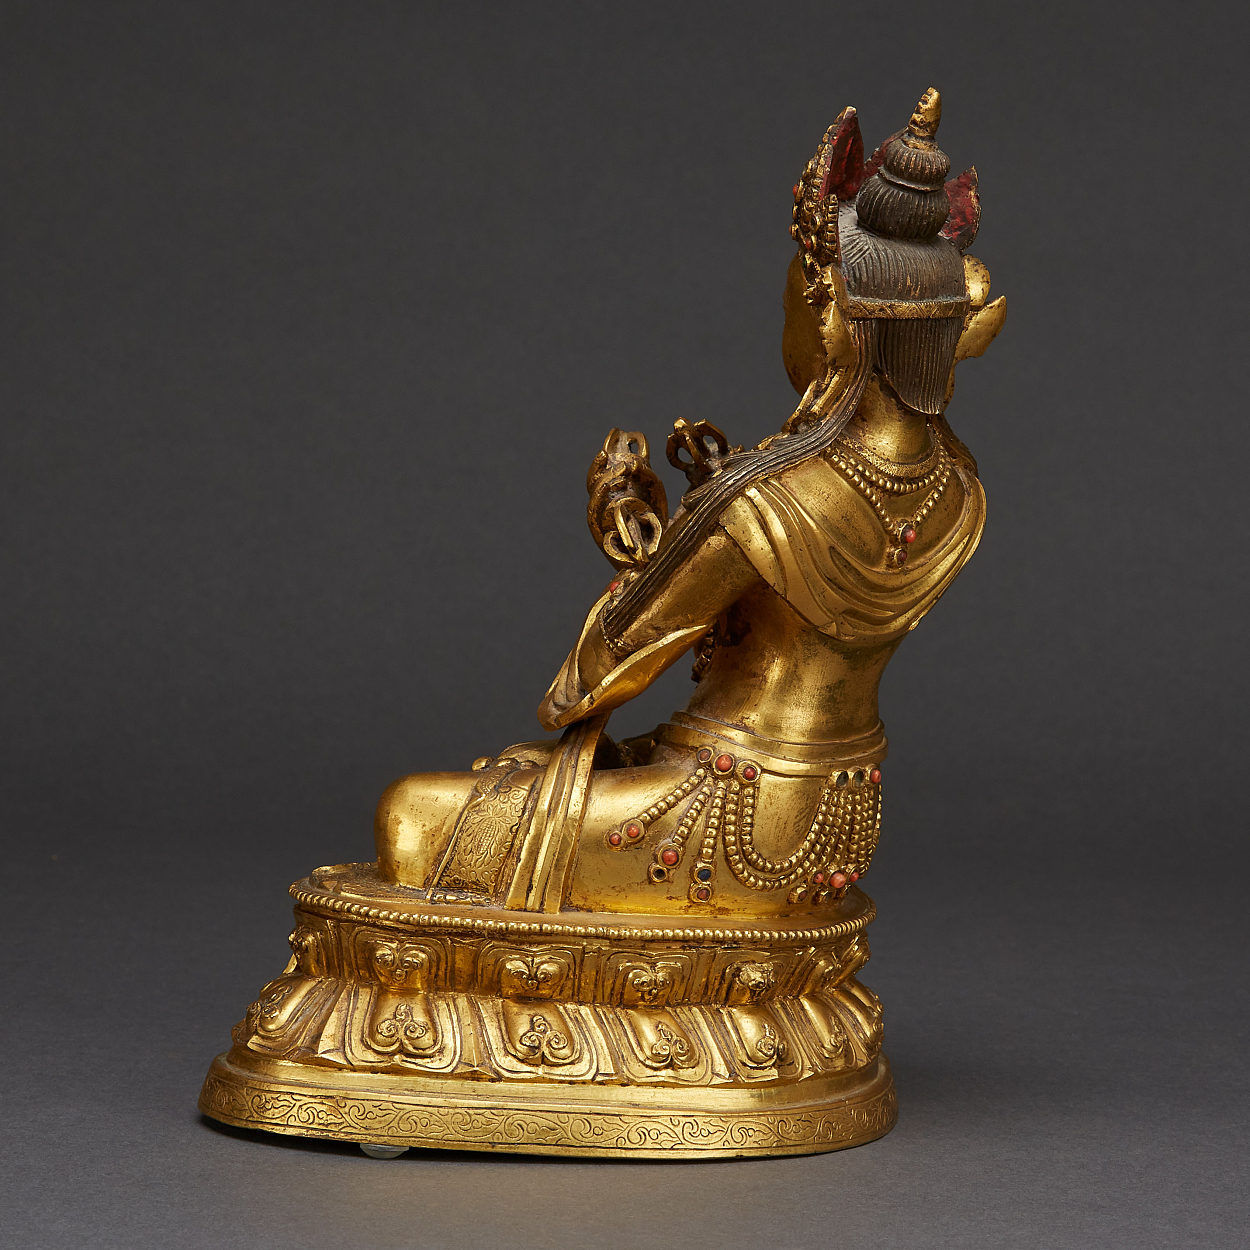 A Tibeto-Chinese Gilt Bronze Figure of Vajradhara